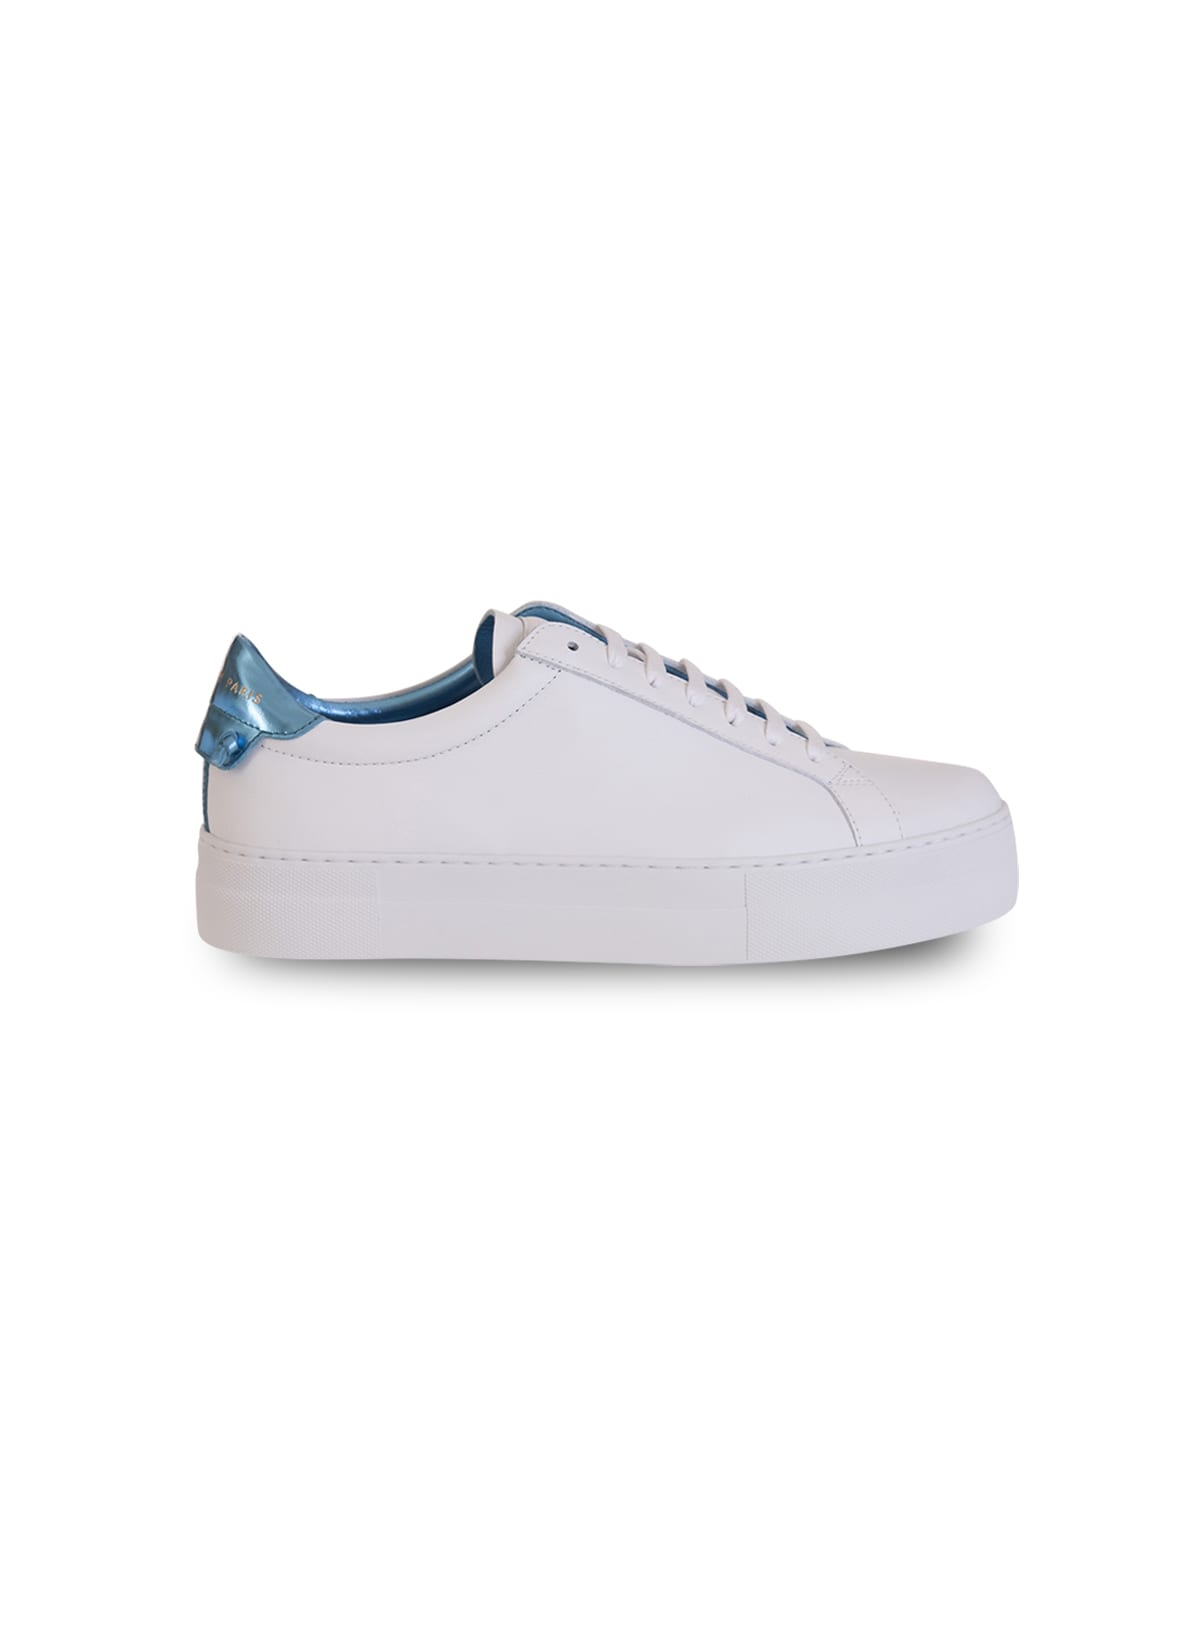 Givenchy TWO-TONES SNEAKERS